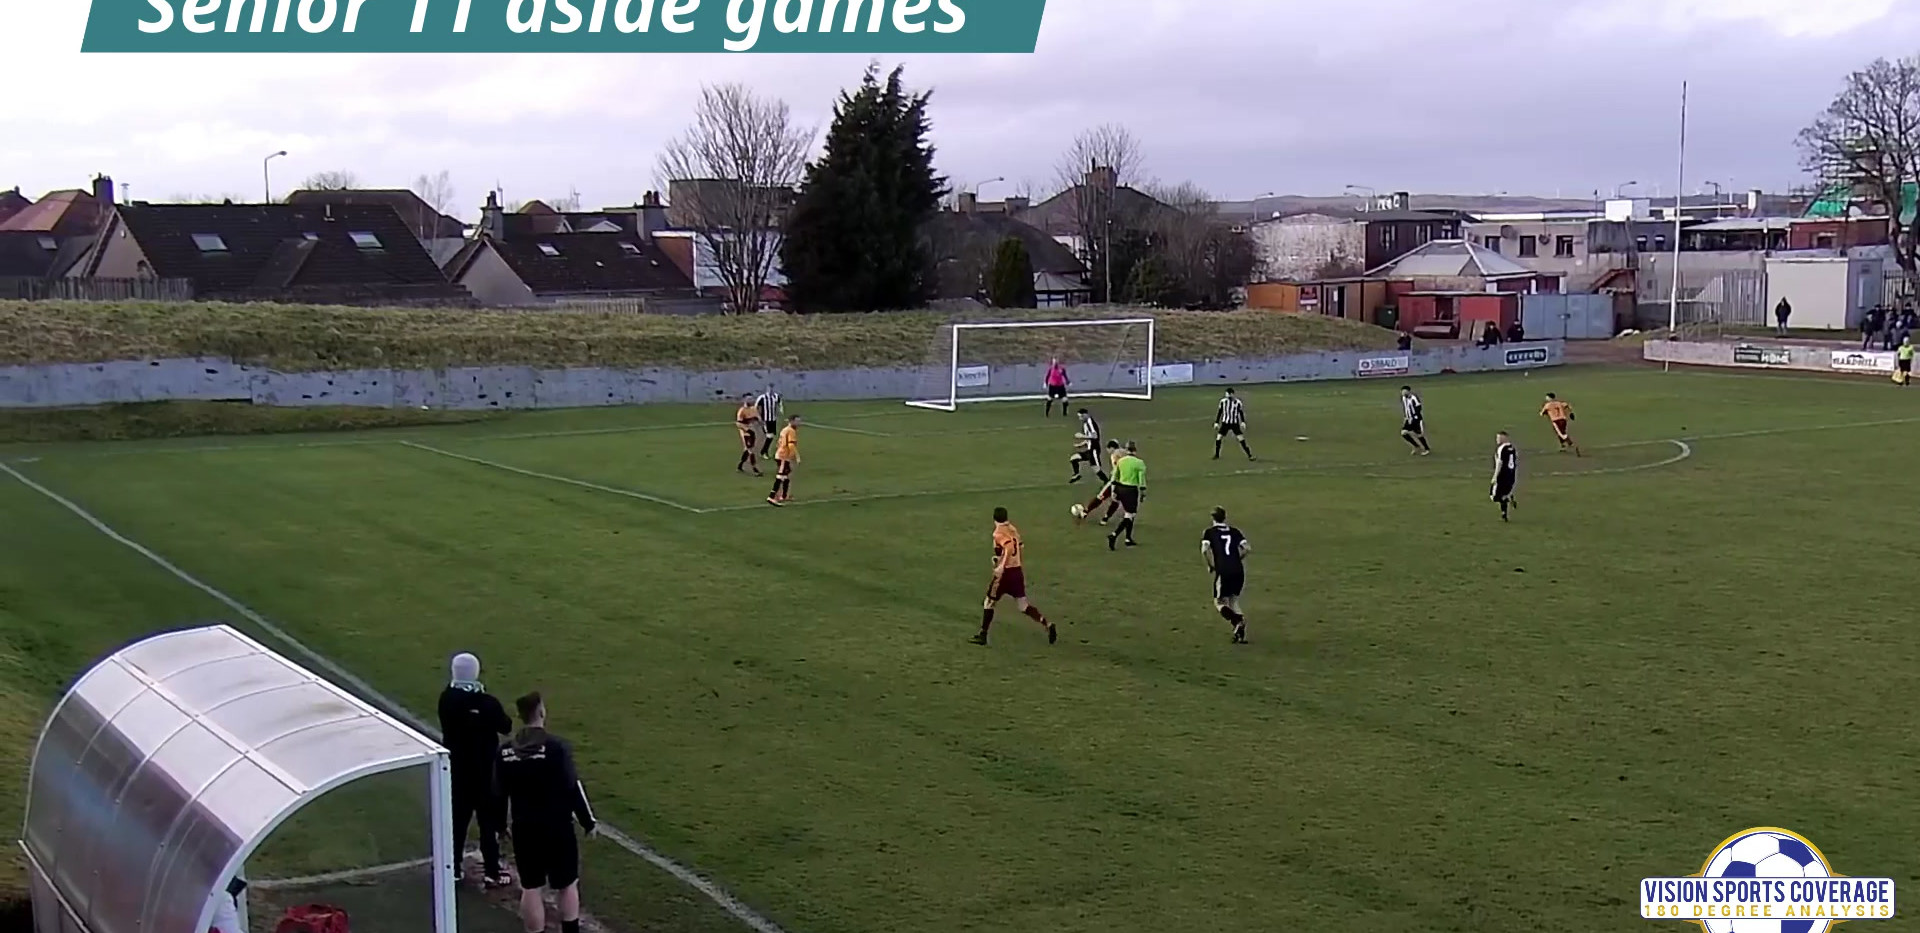 Senior 11 aside games website clip.mp4